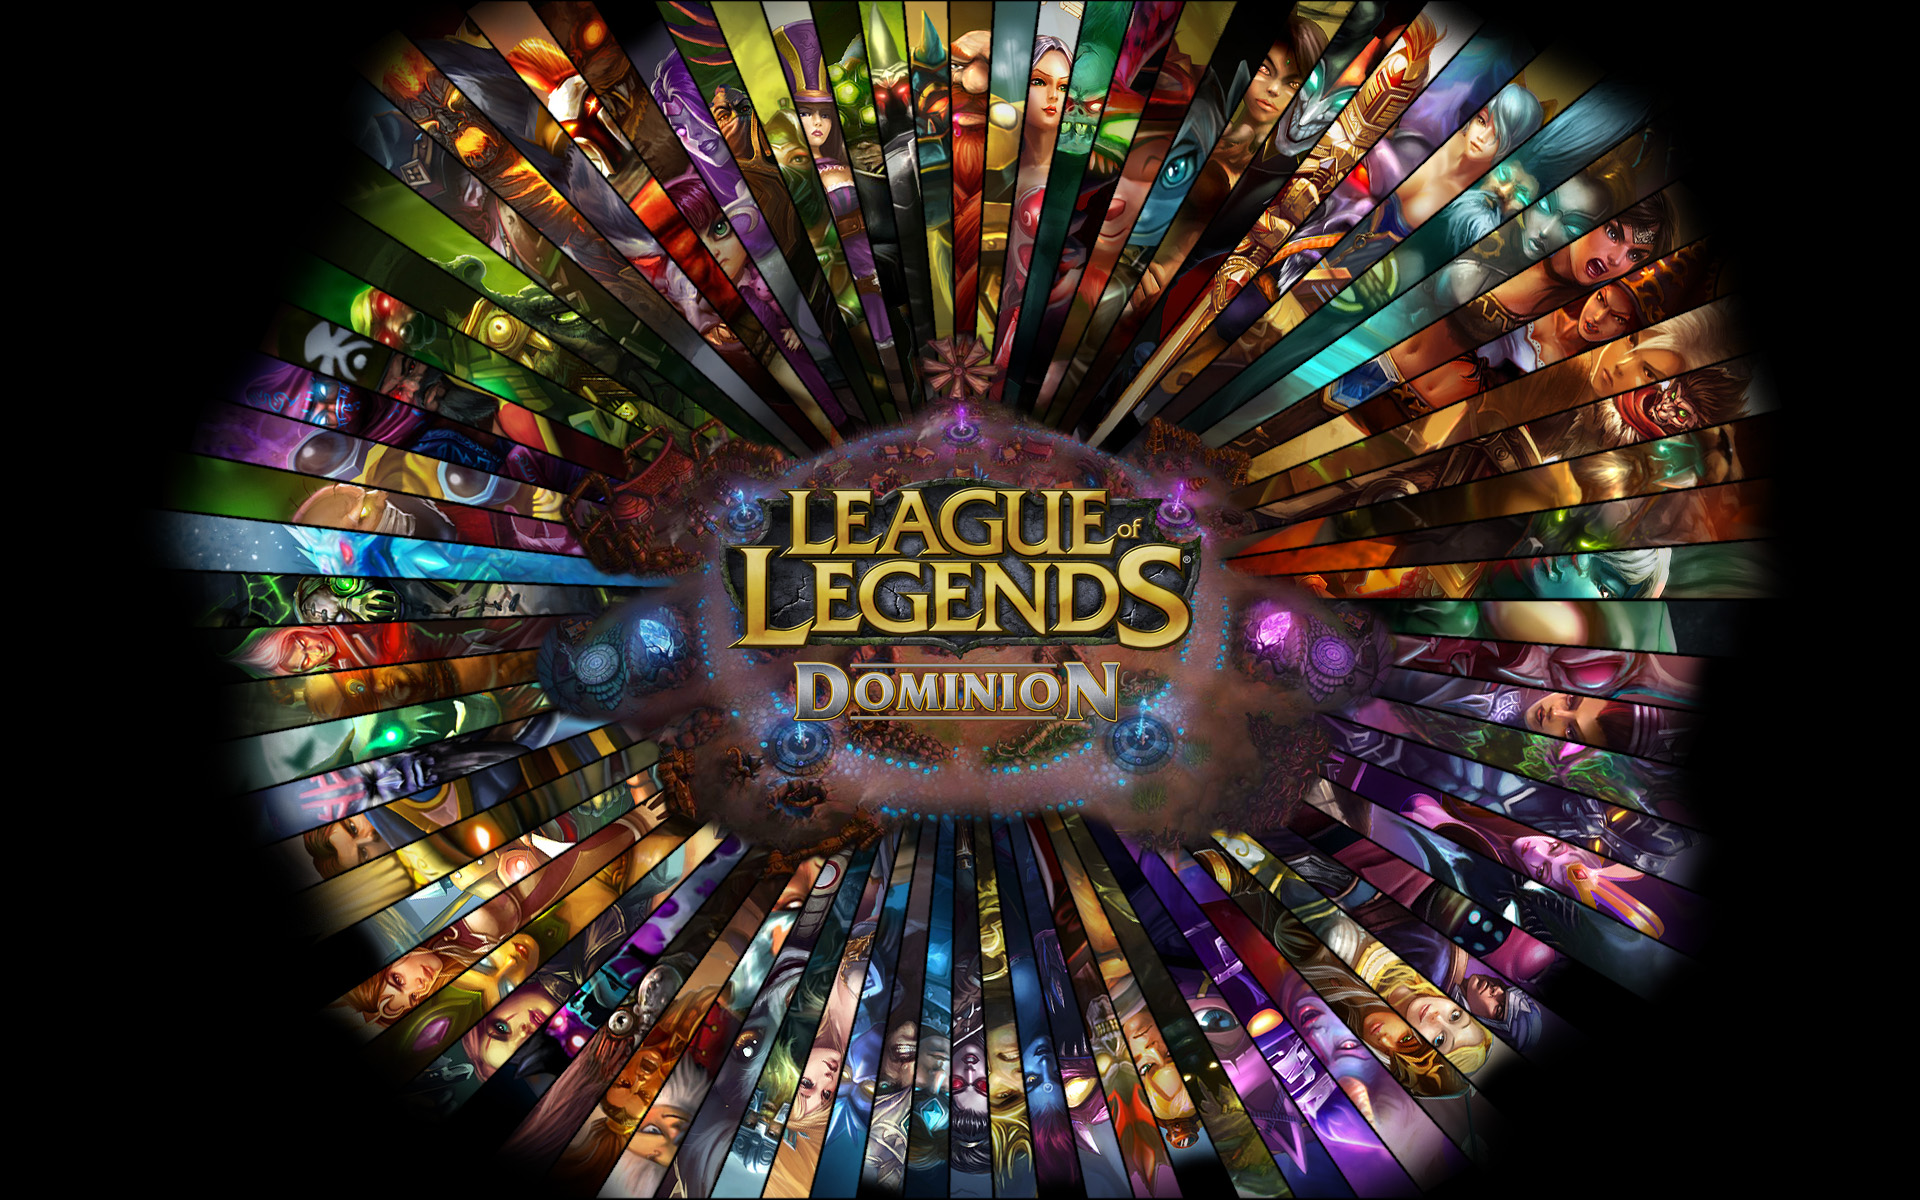 League of legends dominion lolwallpapers league of legends dominion wallpaper voltagebd Image collections